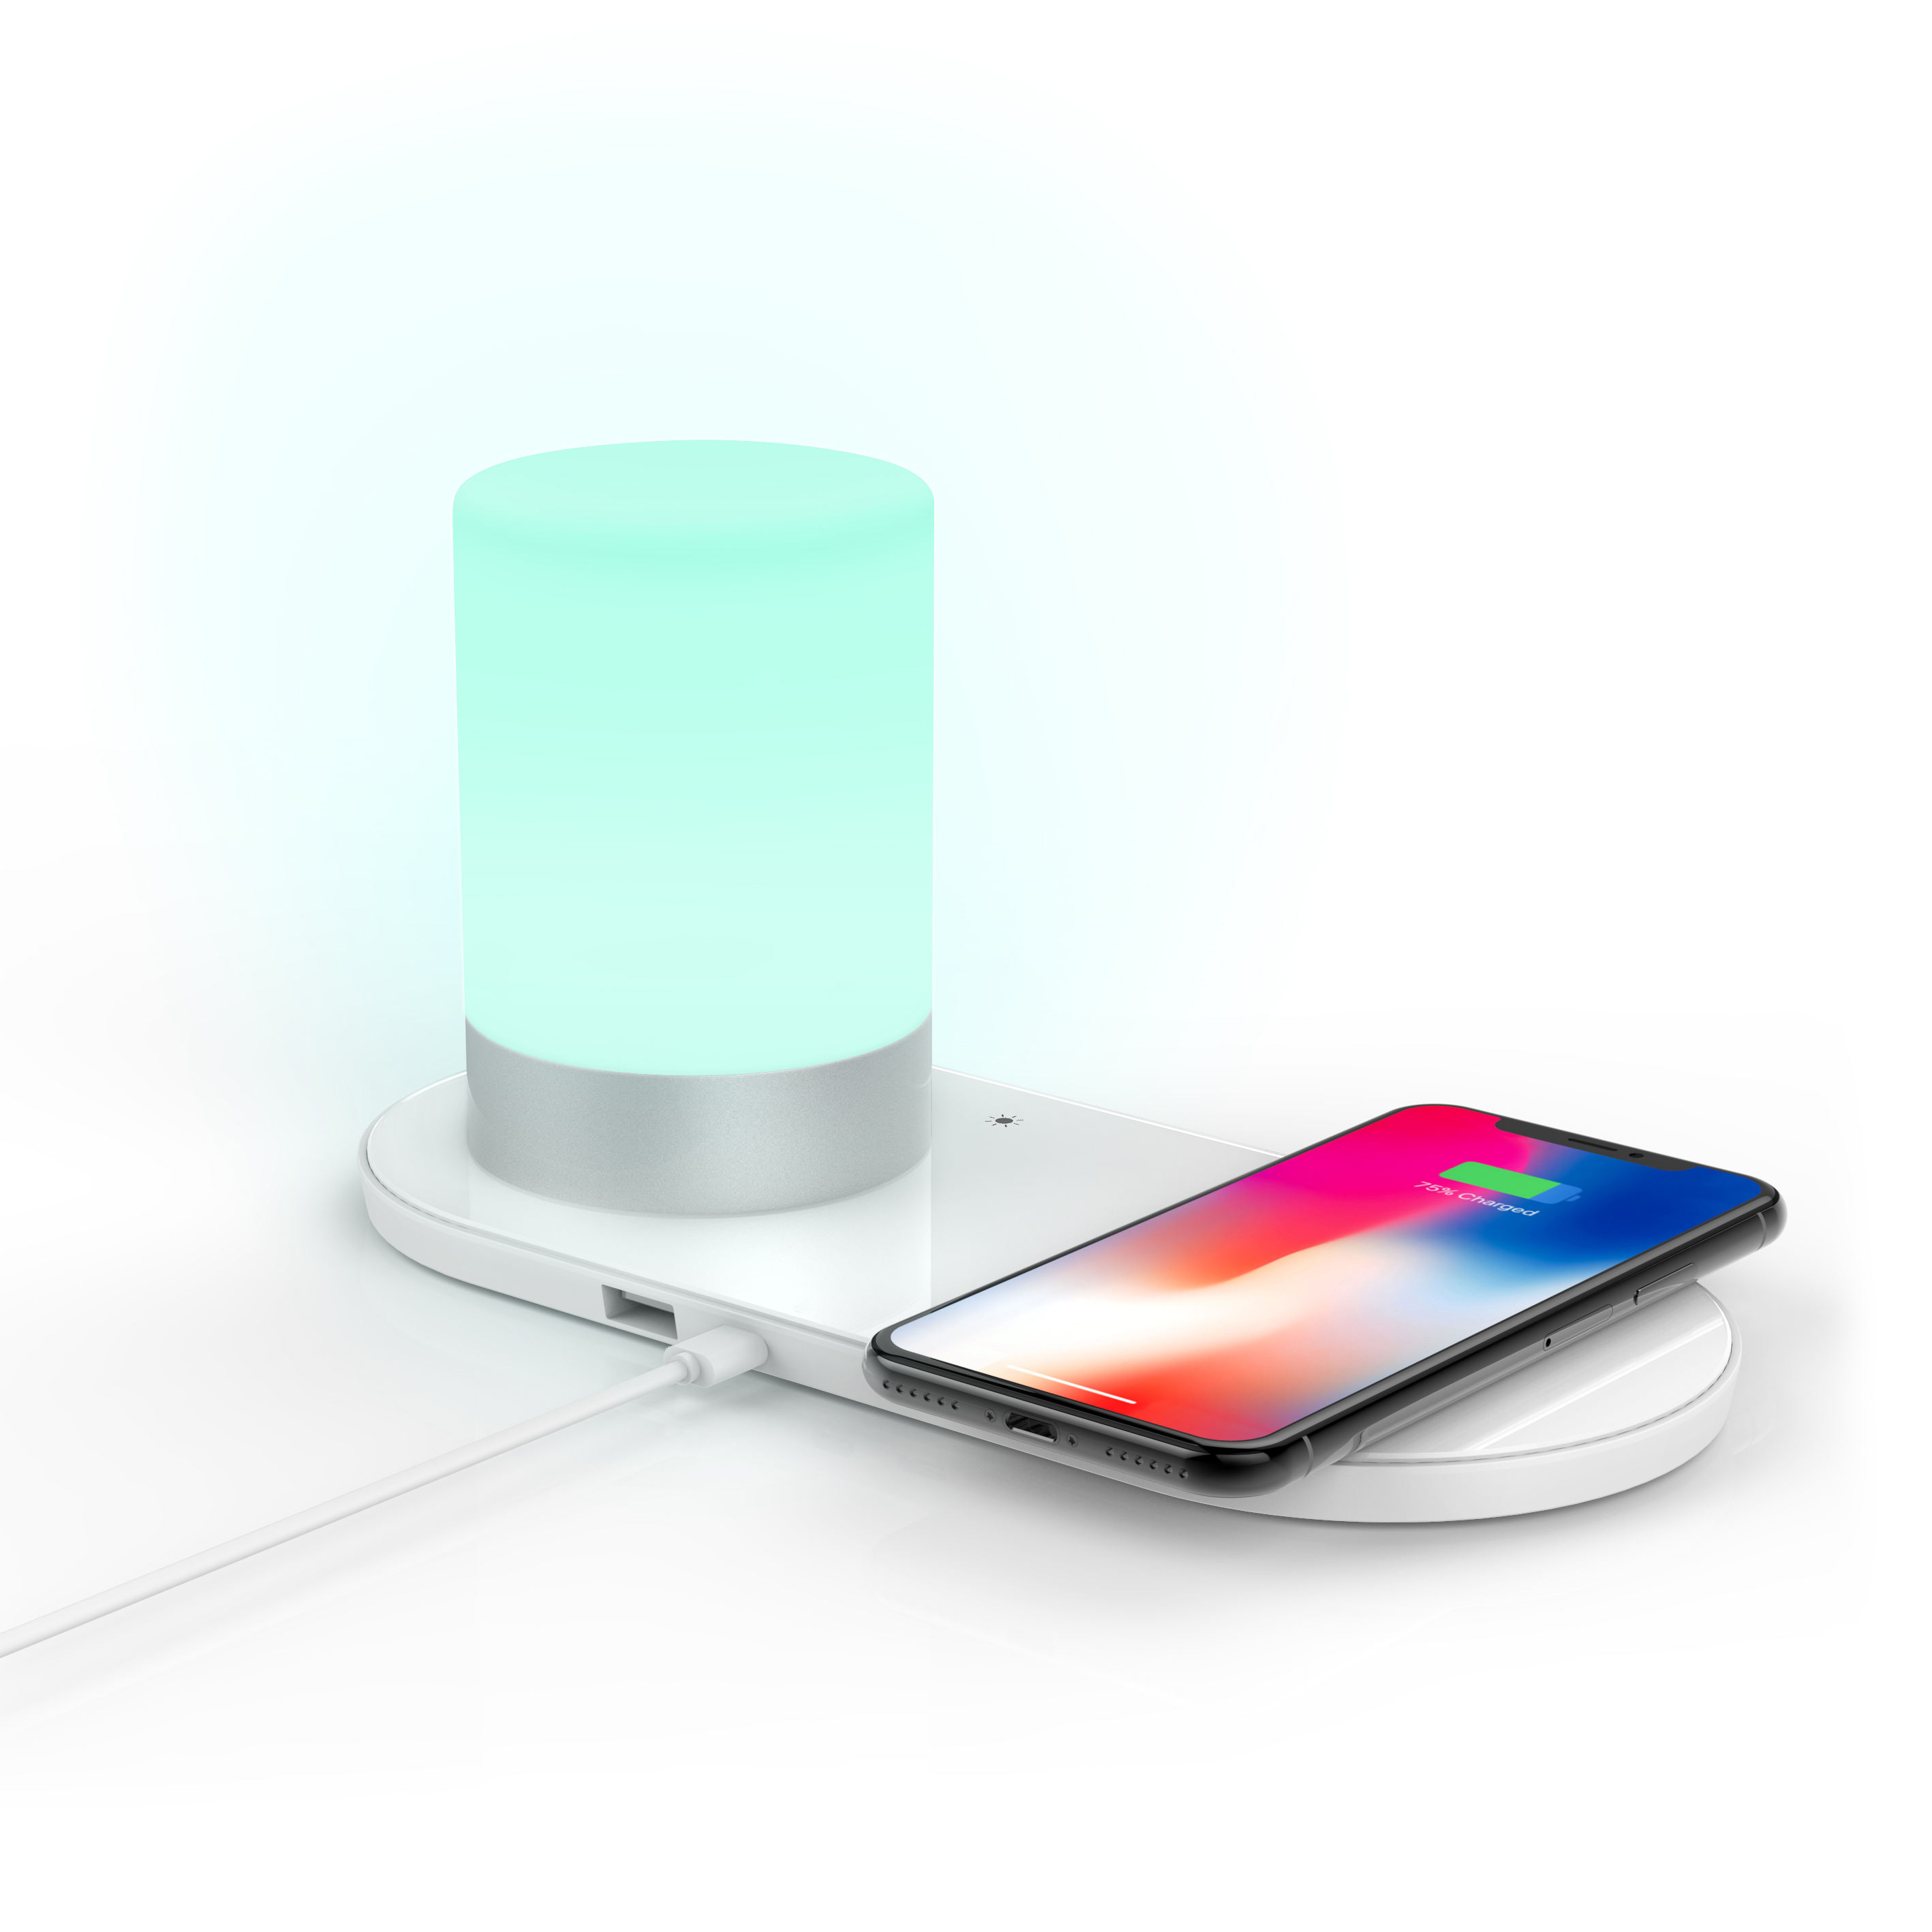 trending products 2020 new arrival friendship lamps wireless charger & RGB night light lamp for reading,sleeping,working lamp